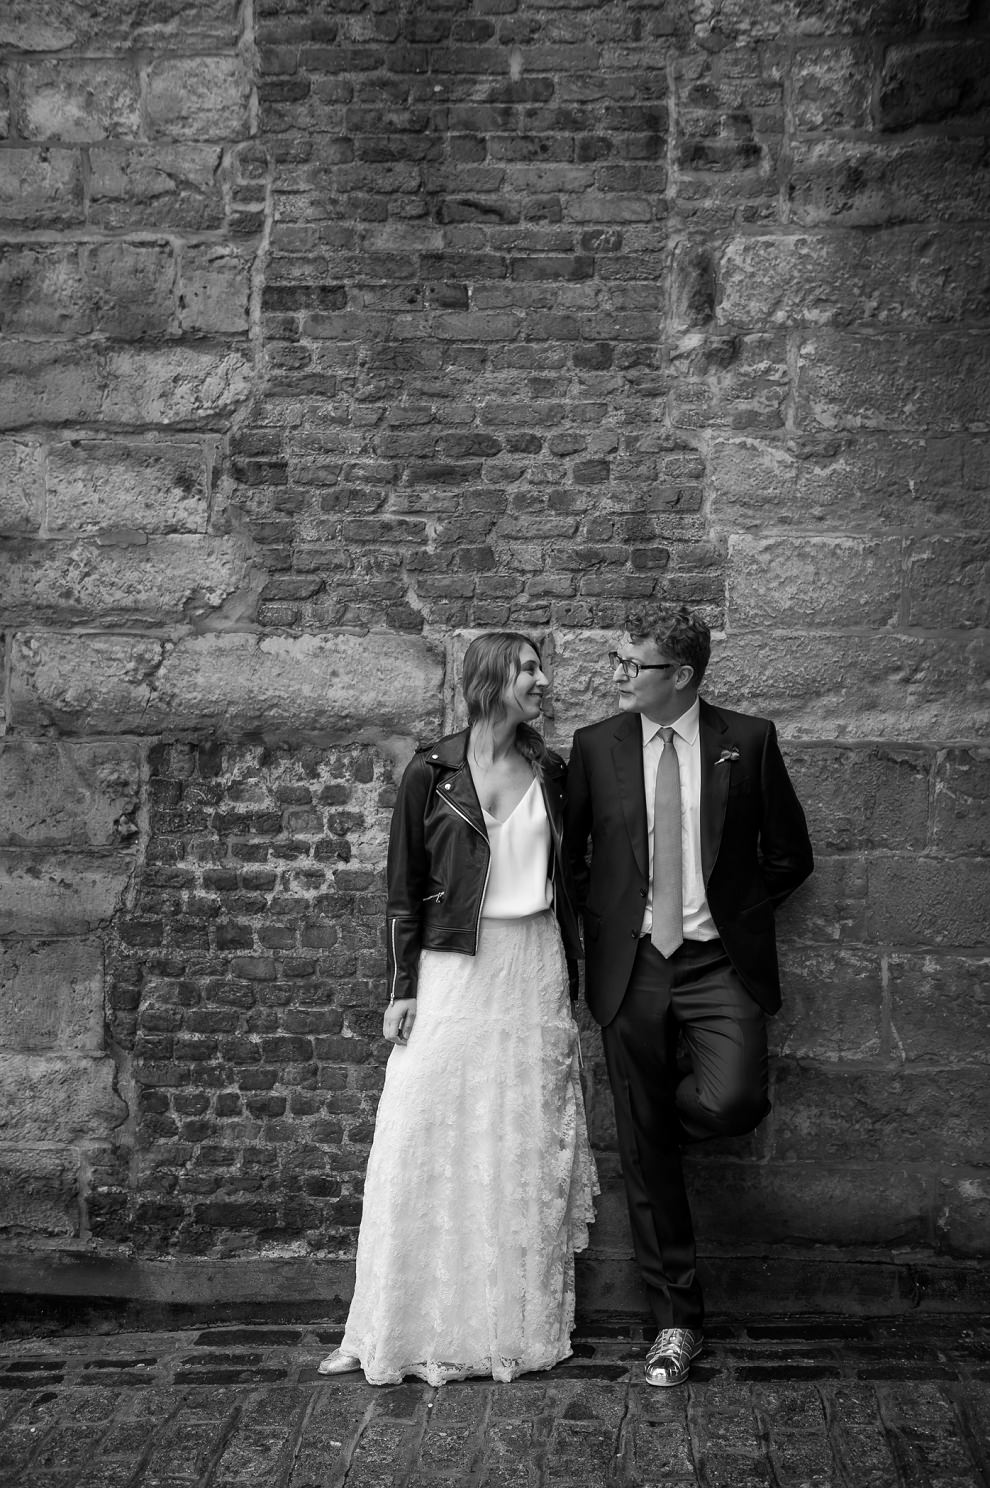 black & white wedding portrait classic London